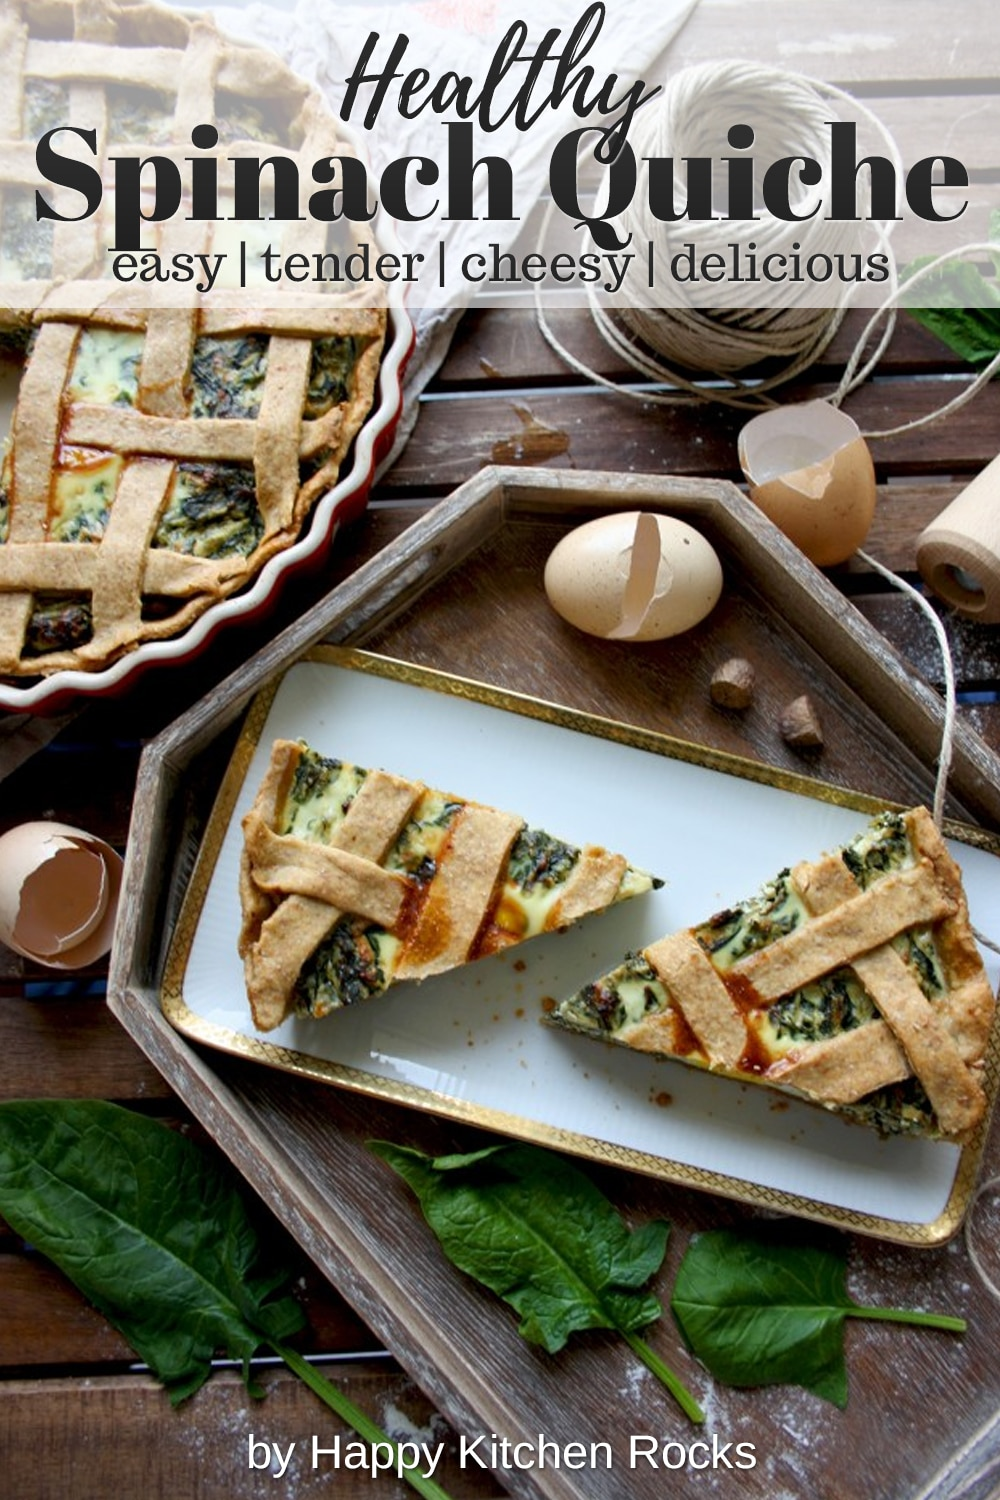 The Best Rustic Ricotta Spinach Quiche Pieces Collage with Text Overlay